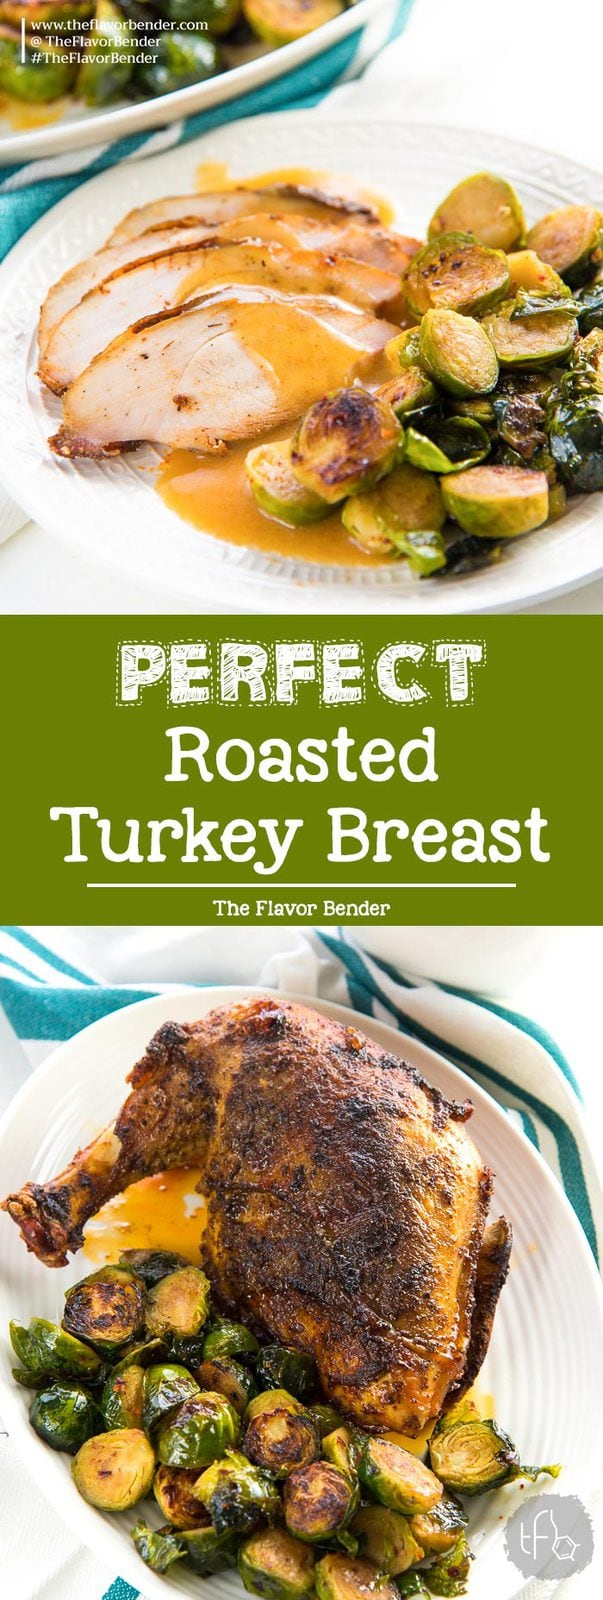 Oven Roasted Turkey Breast - Learn how to cook, perfectly cooked, tender and juicy turkey breast in the oven. Perfect for Thanksgiving or Christmas celebrations! #ThanksgivingRecipes #TurkeyRoast #TurkeyBreastRoast #SlowRoasted